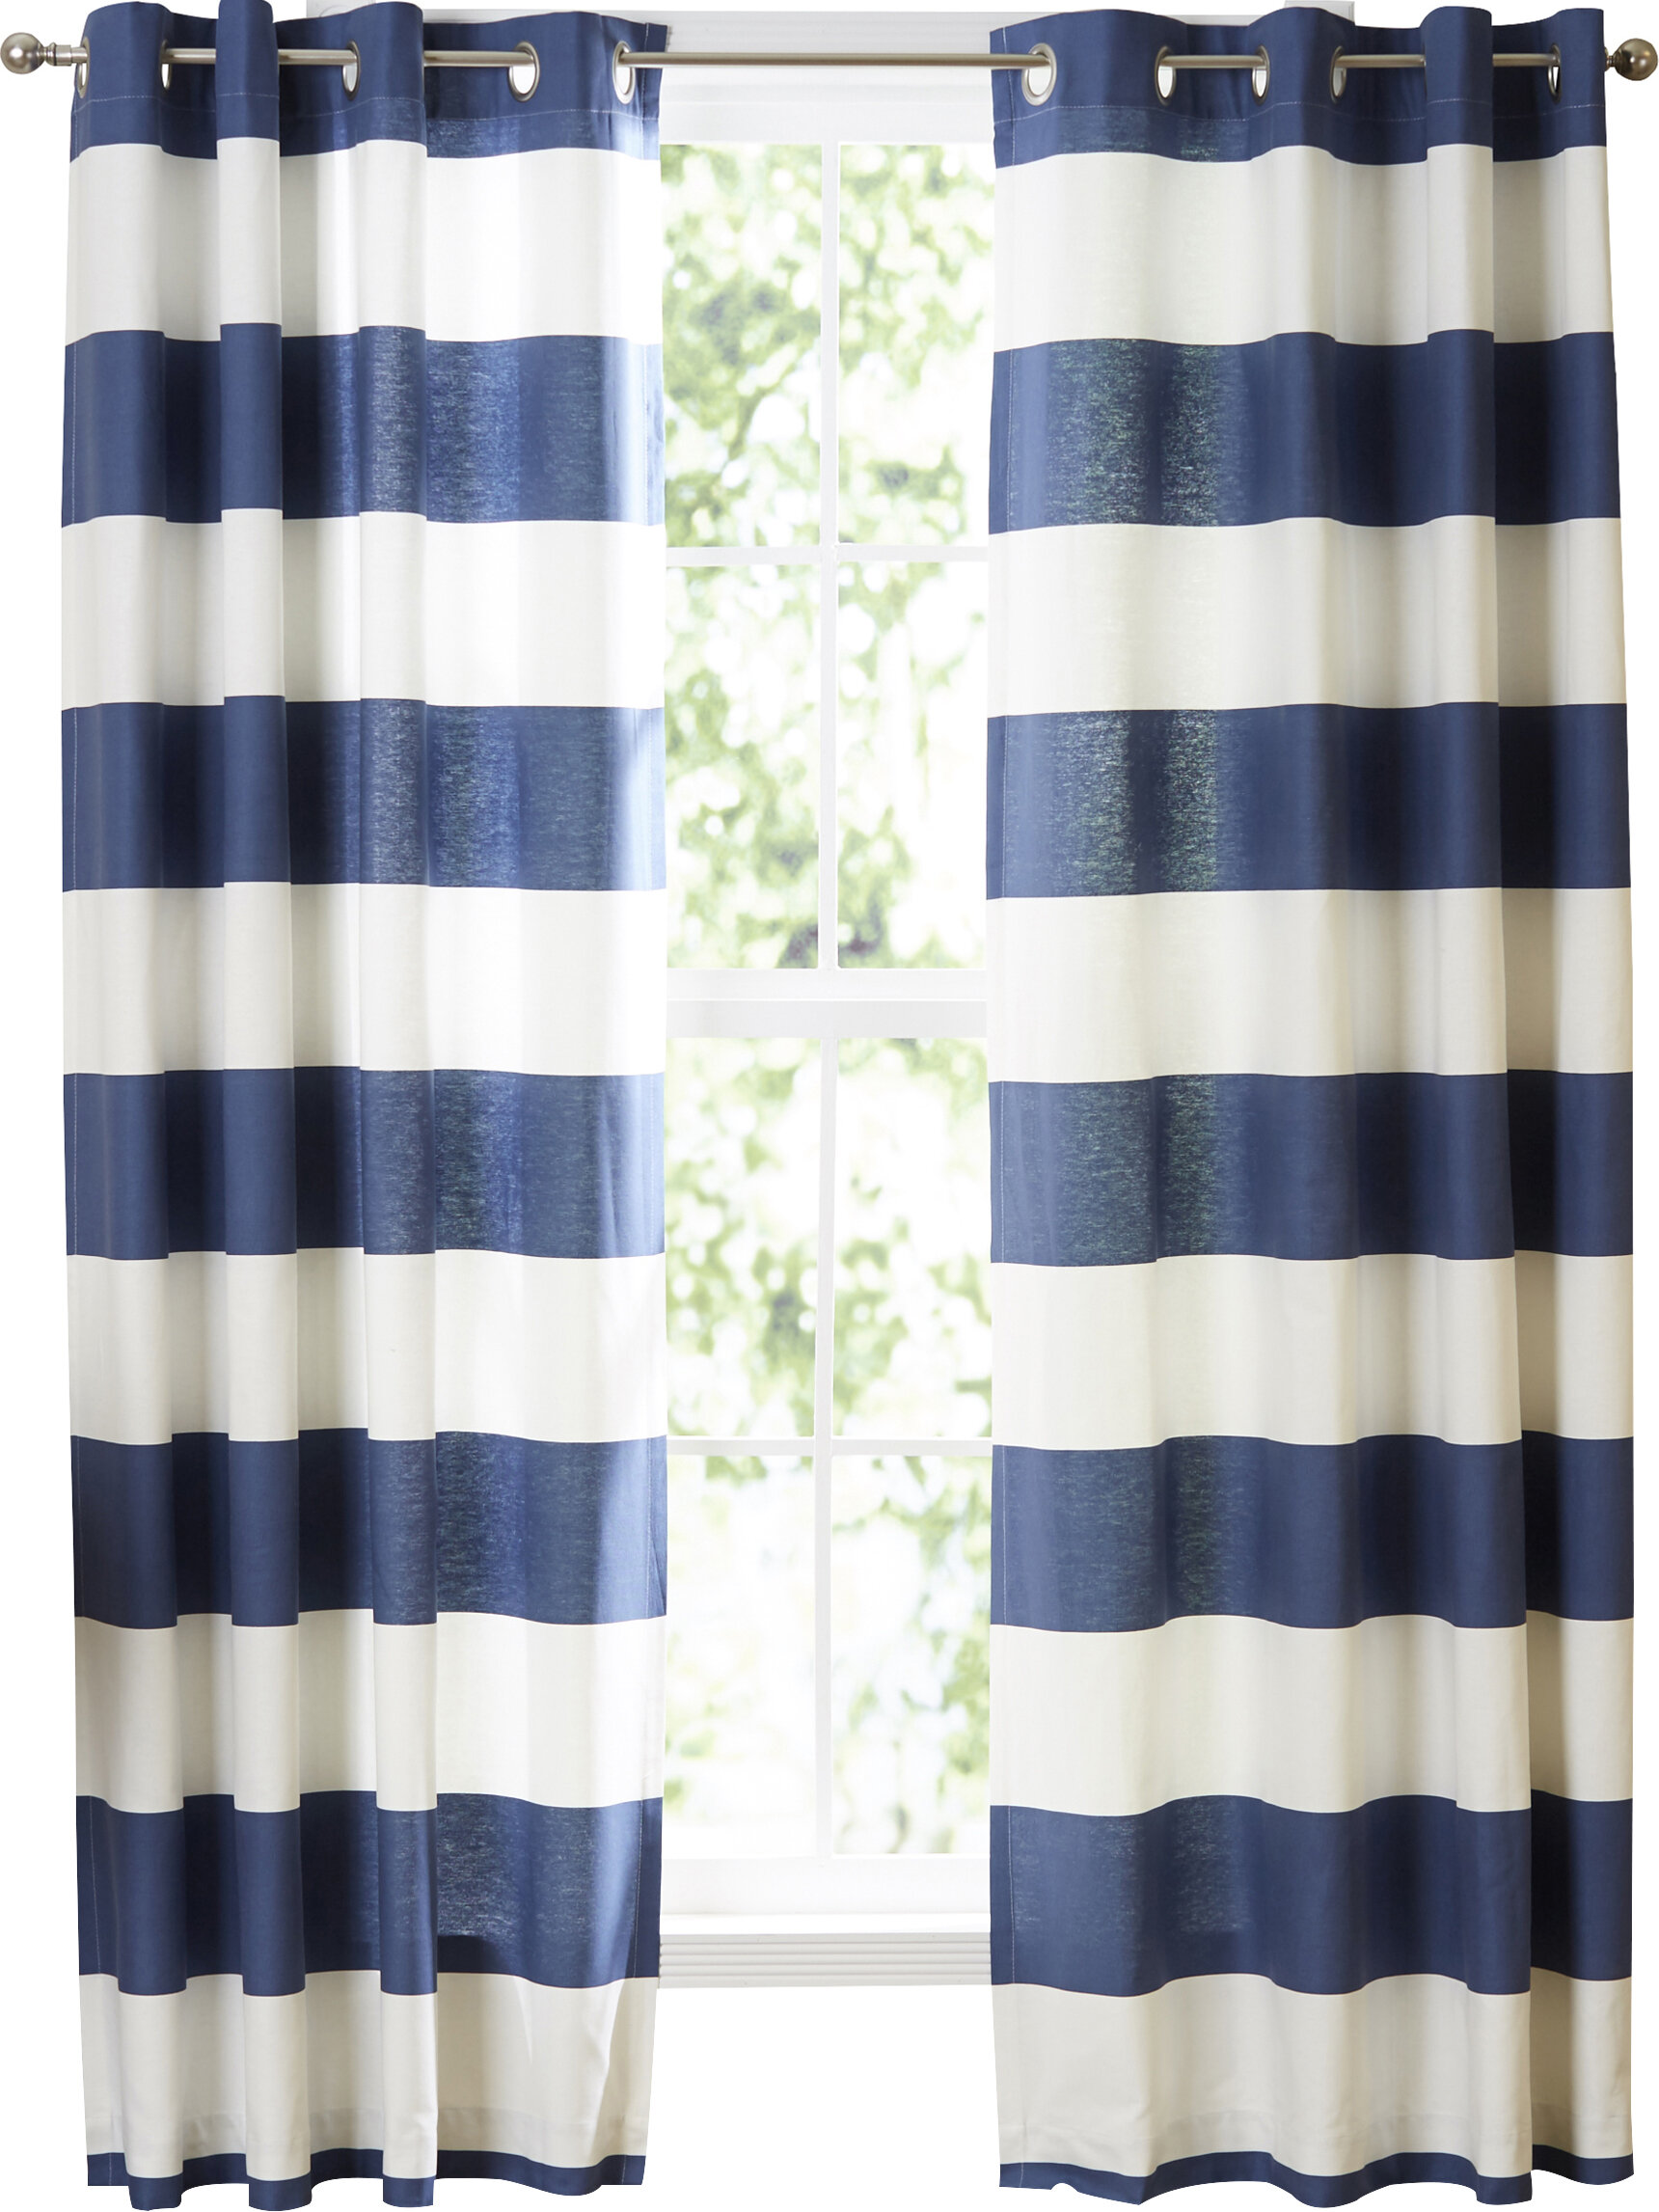 picture nautica print online baby curtains ideas target valances room curtain nautical merge blue great